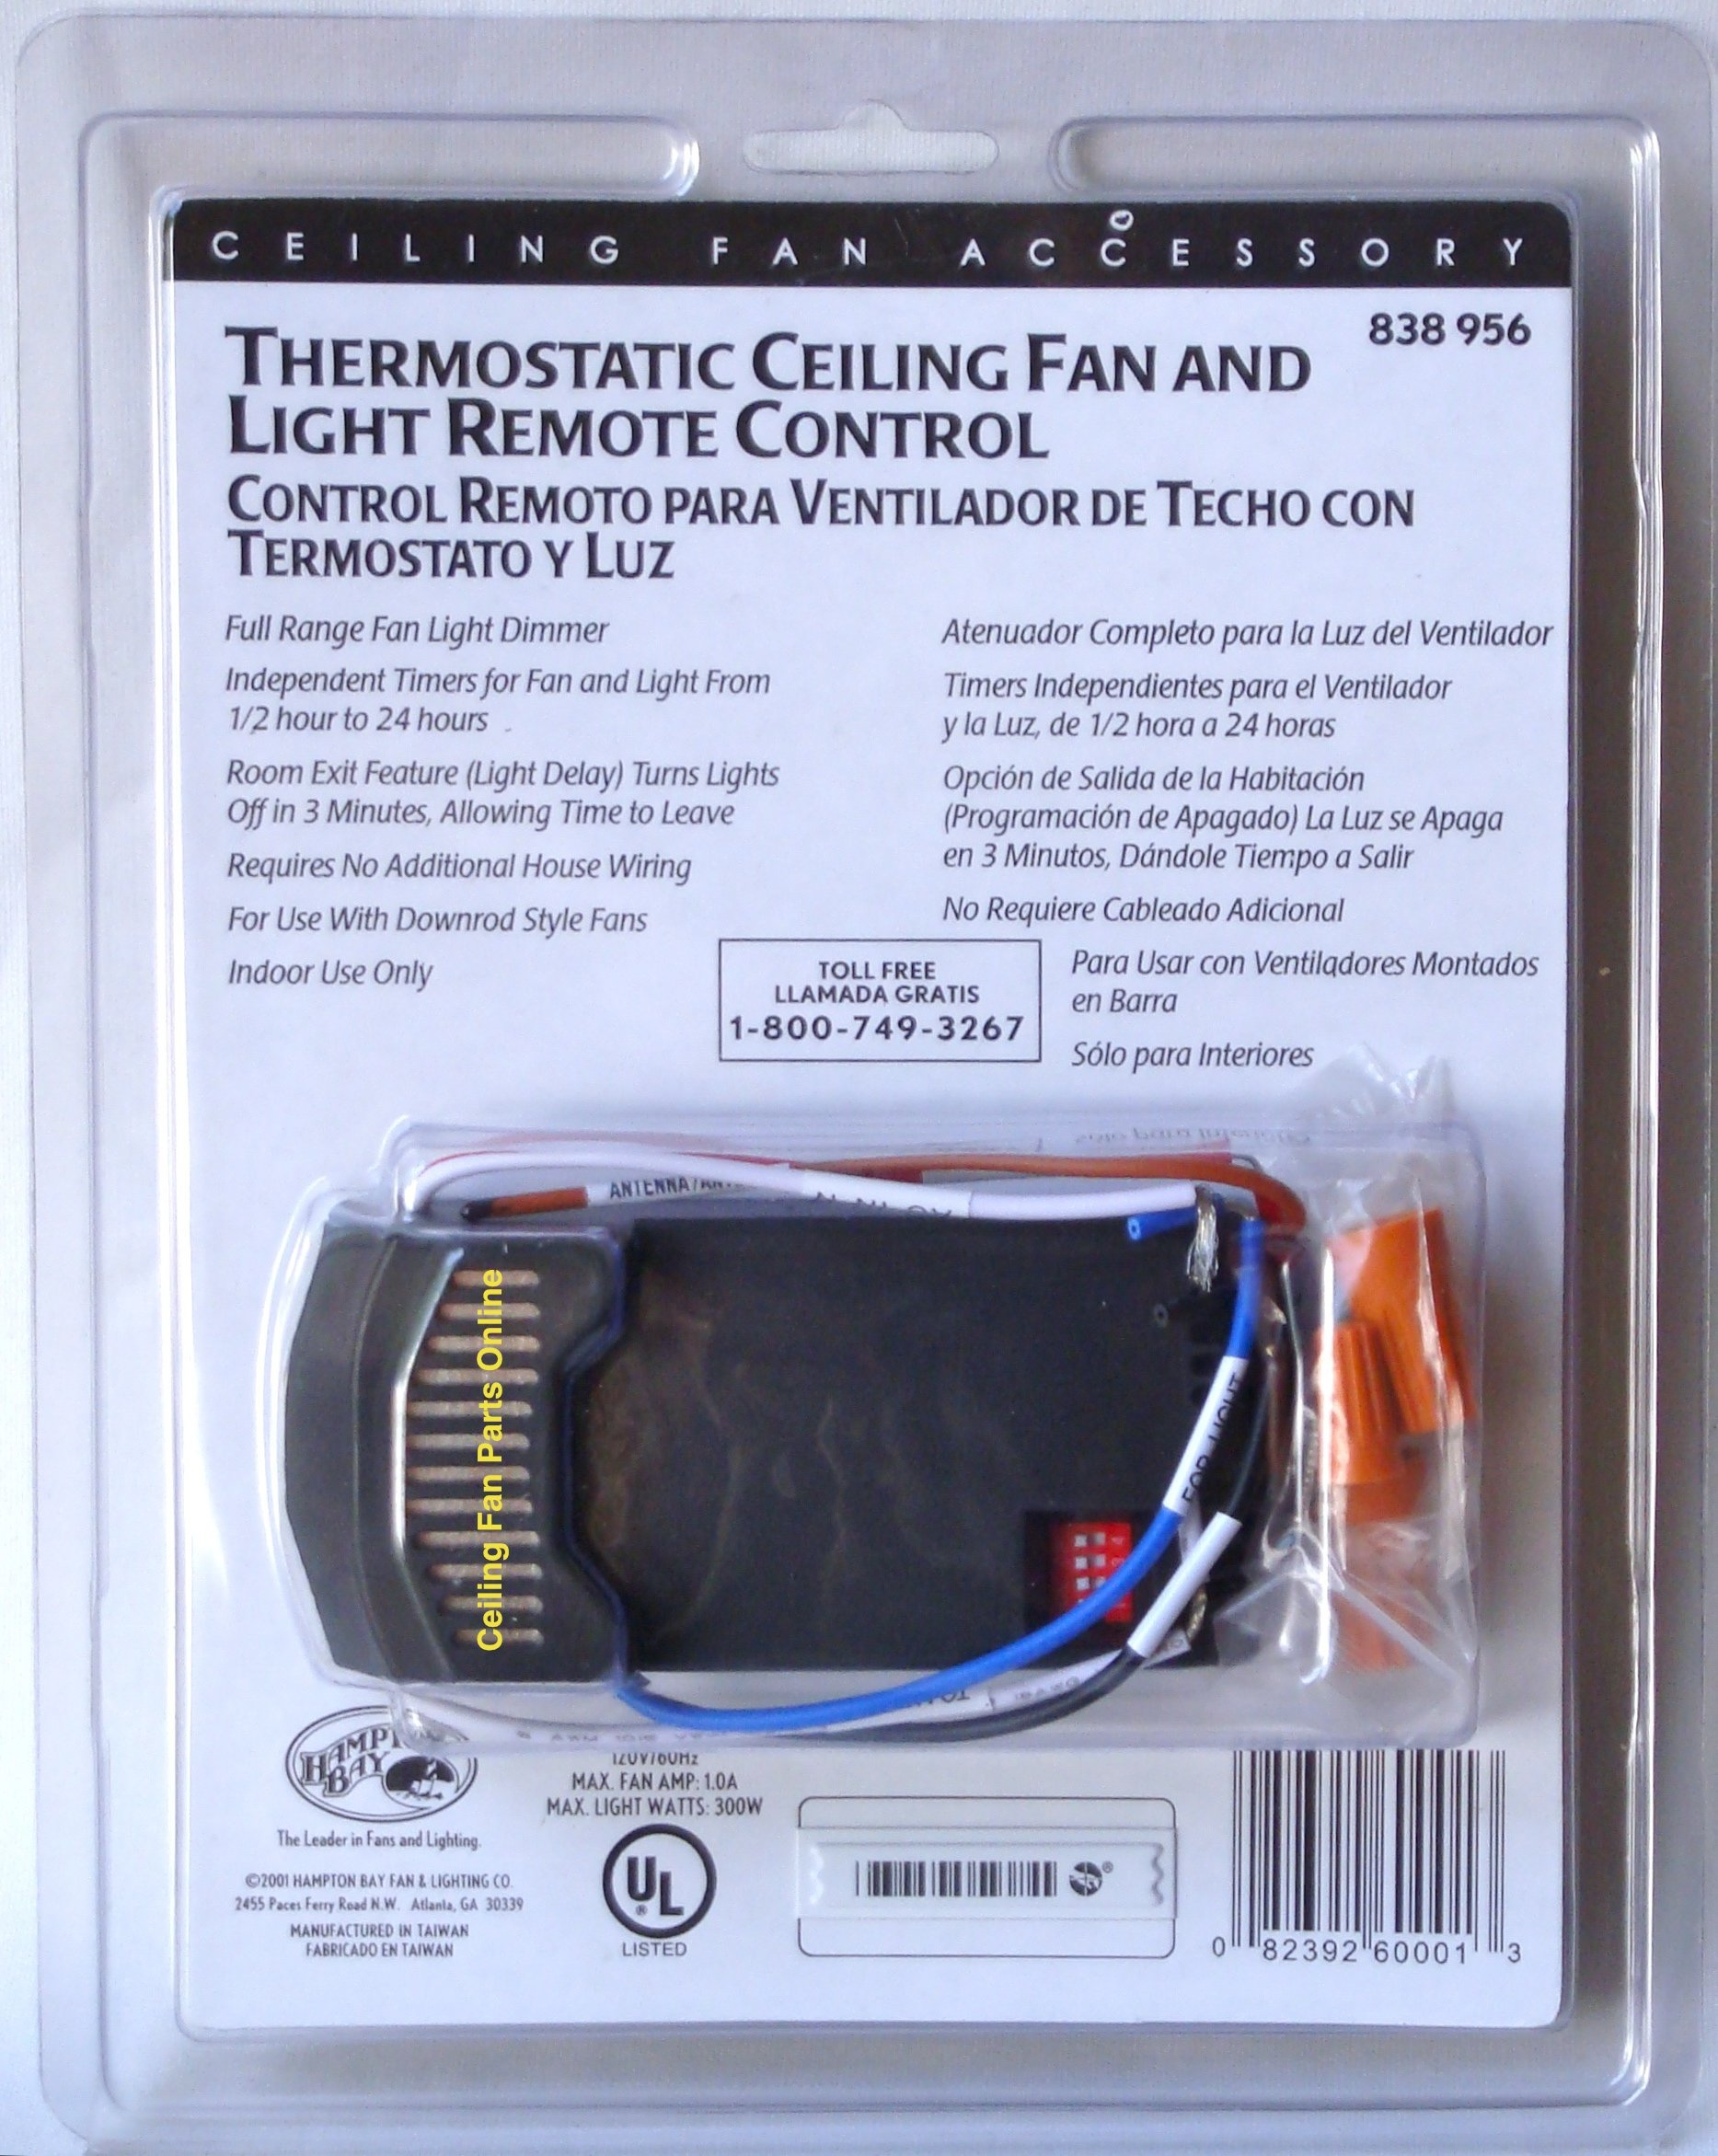 Hampton Bay Thermostatic Ceiling Fan and Light Remote Control 838-956 by Hampton Bay (Image #1)